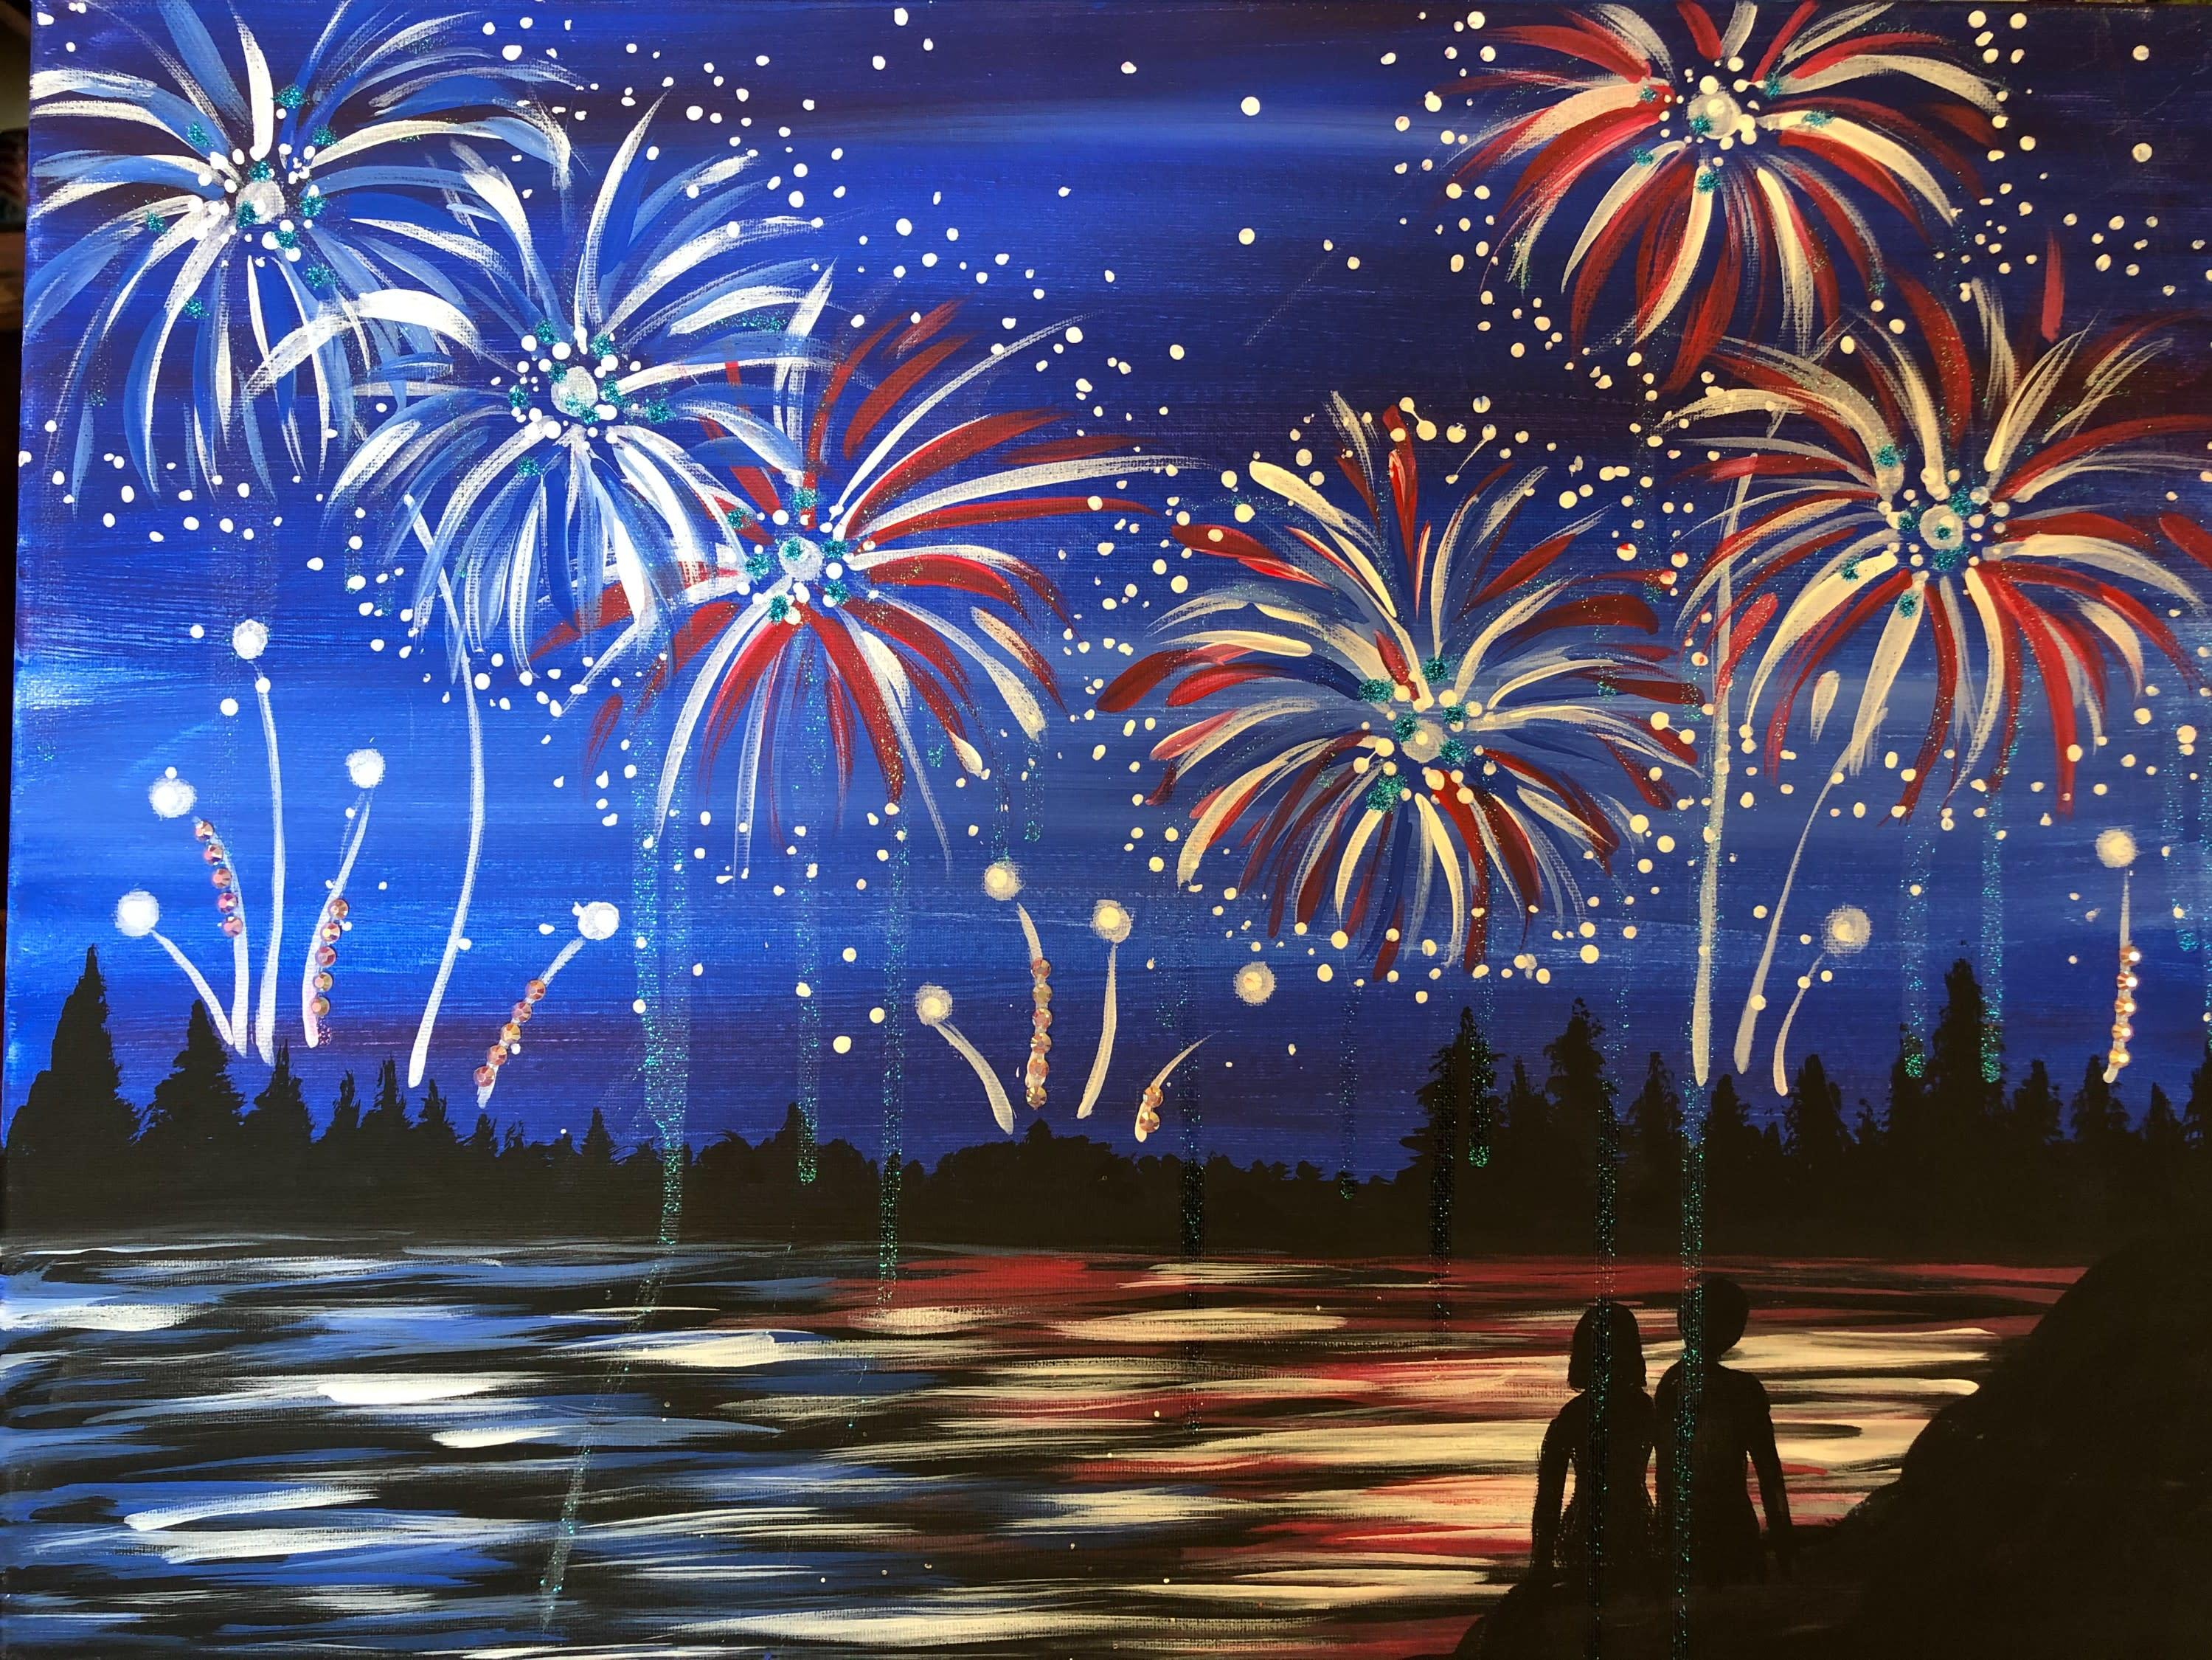 4th of July (or patriotic) painting of fireworks, a lake, trees & and the shadow of a woman & man